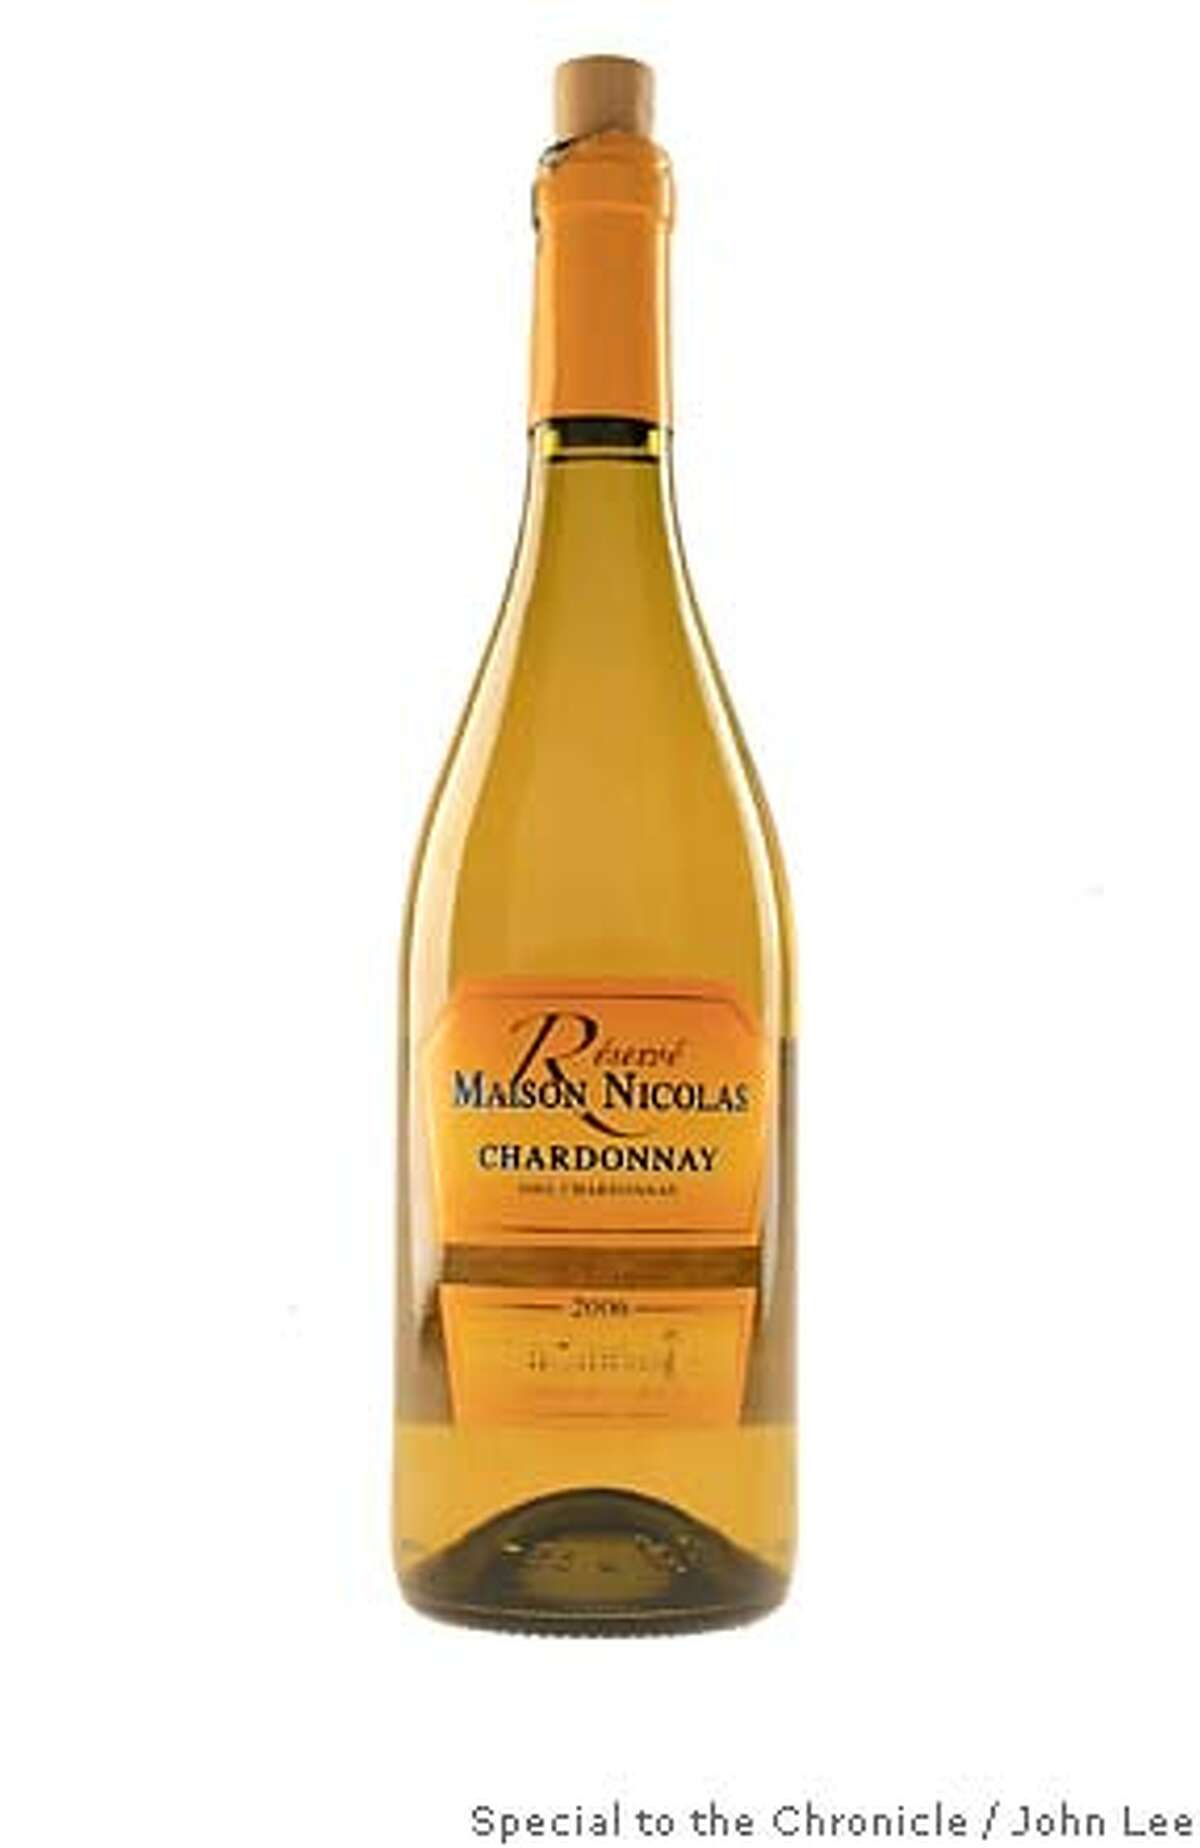 BARGAIN03_01_JOHNLEE.JPG 2006 Maison Nicolas Chardonnay. By JOHN LEE/SPECIAL TO THE CHRONICLE